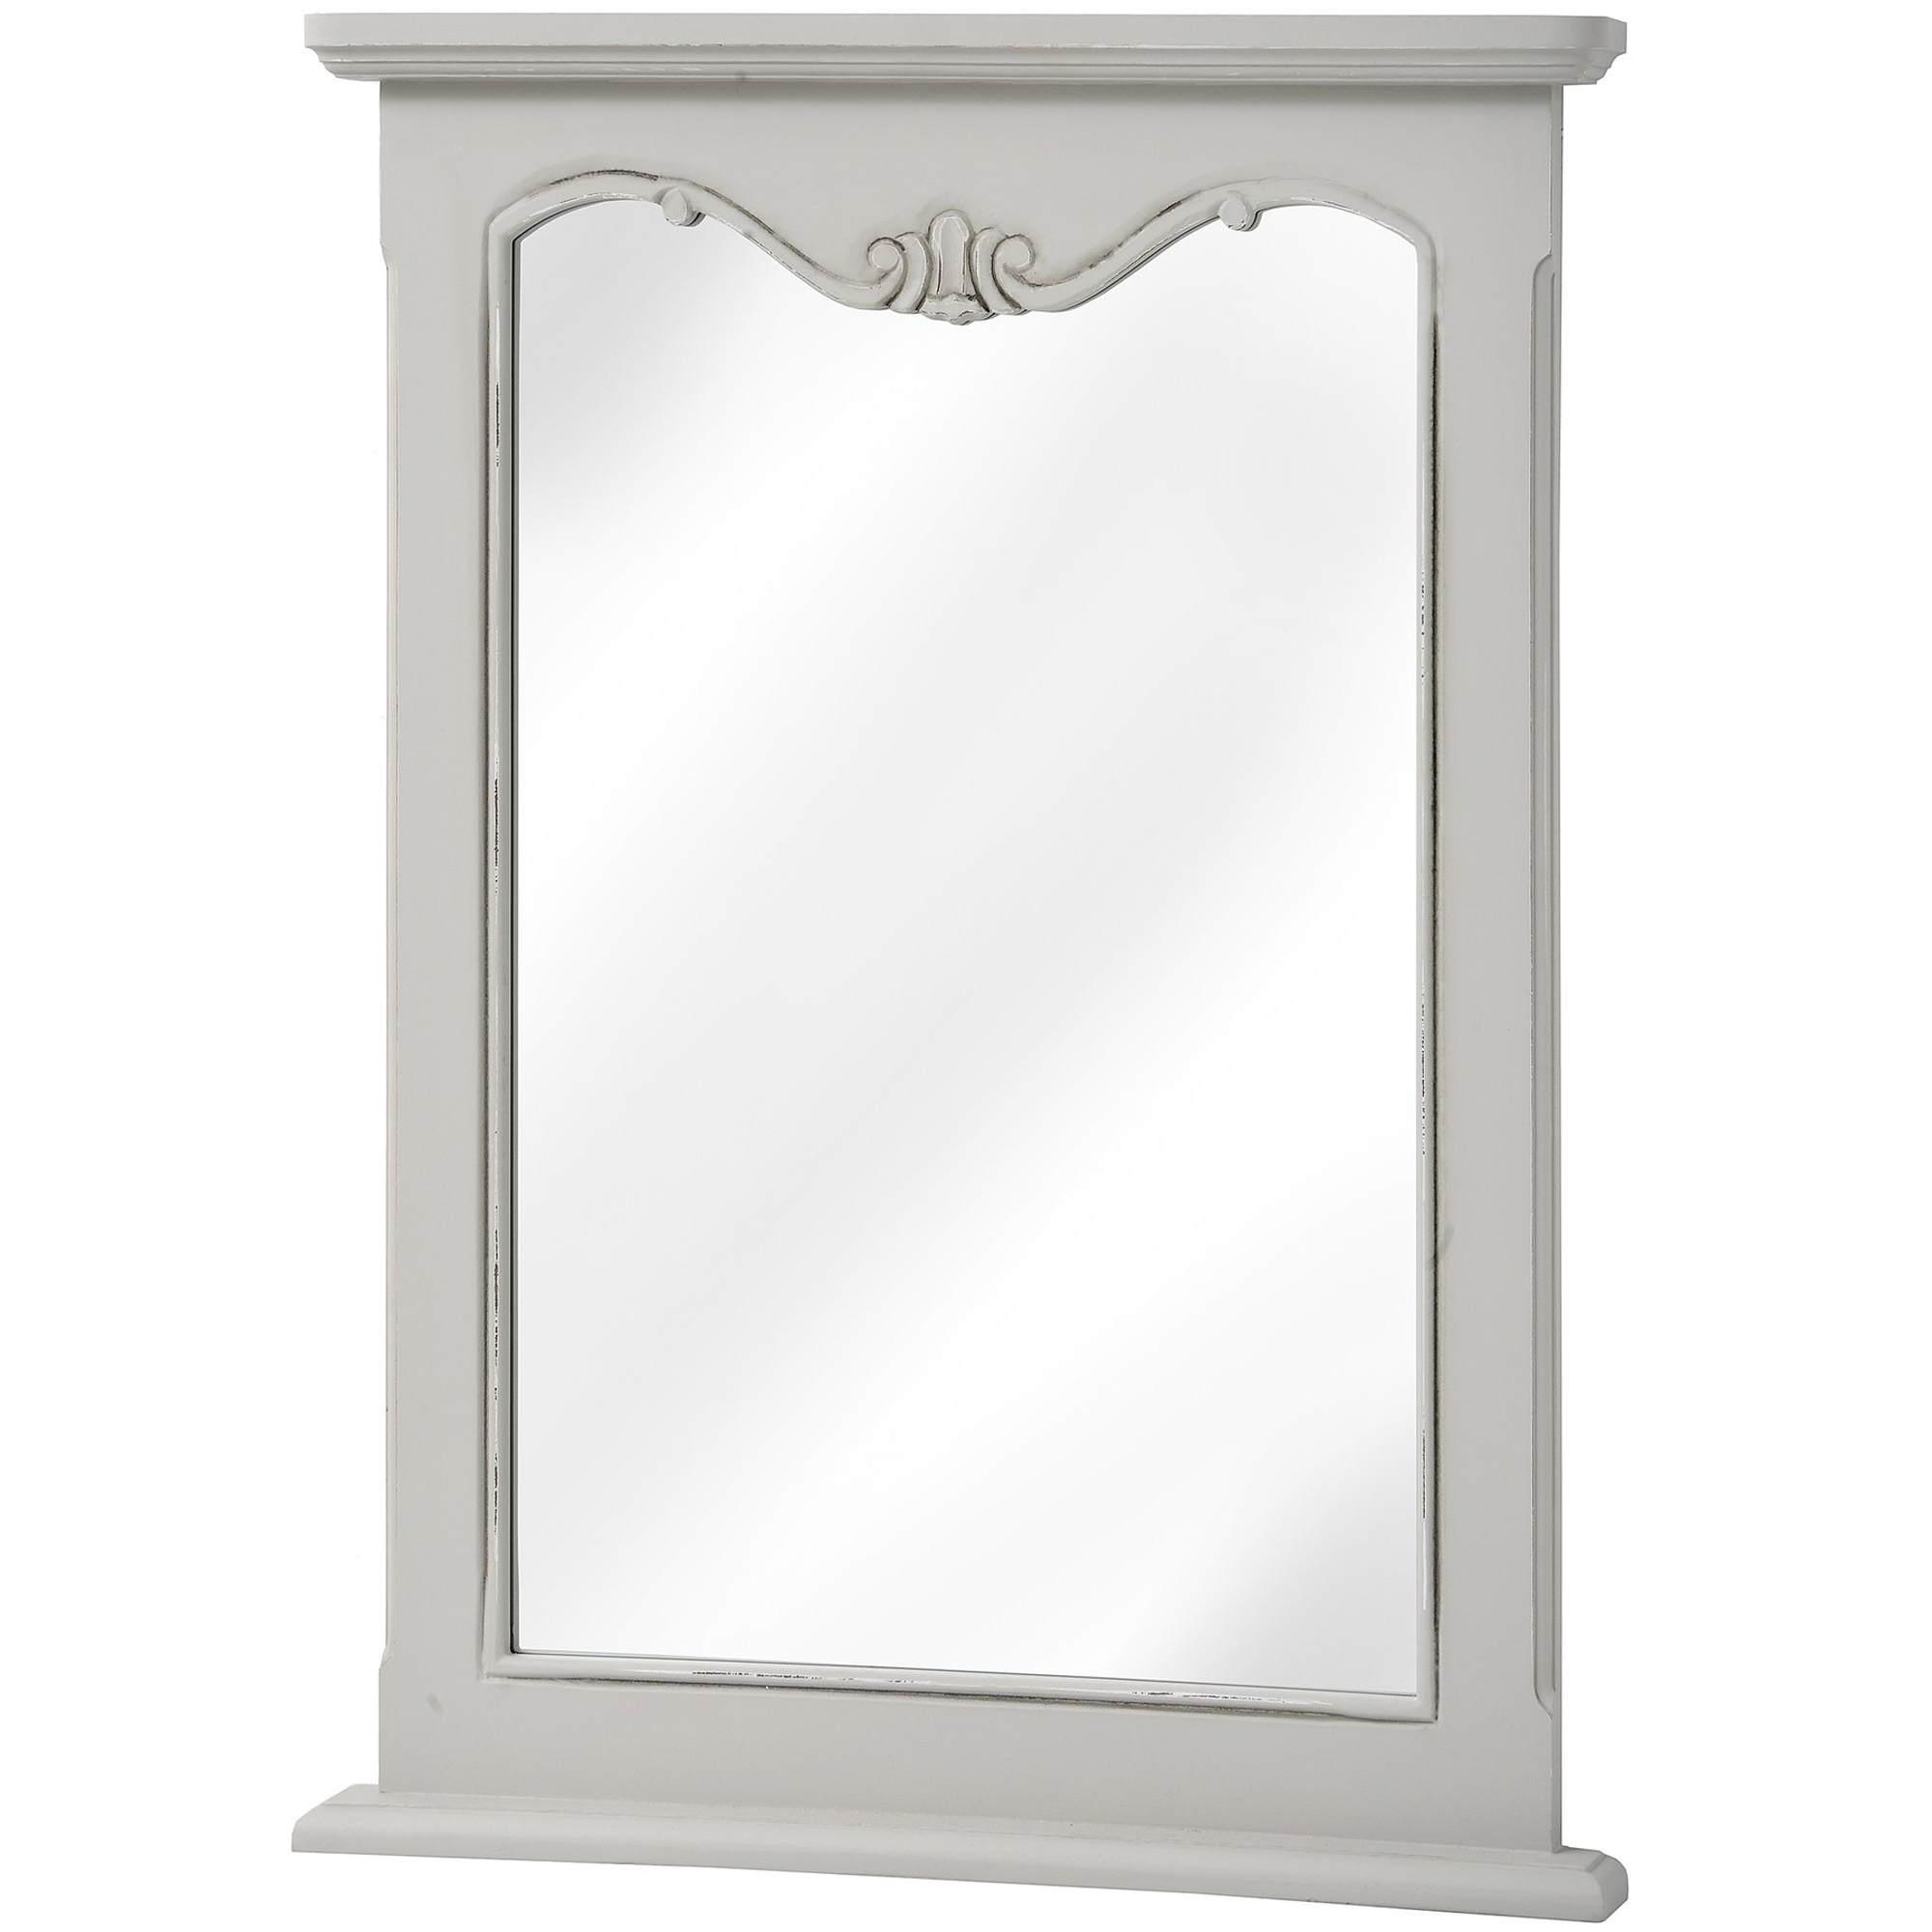 Fashionable White Shabby Chic Wall Mirrors With Regard To Fleur Shabby Chic Wall Mirror (Gallery 16 of 20)